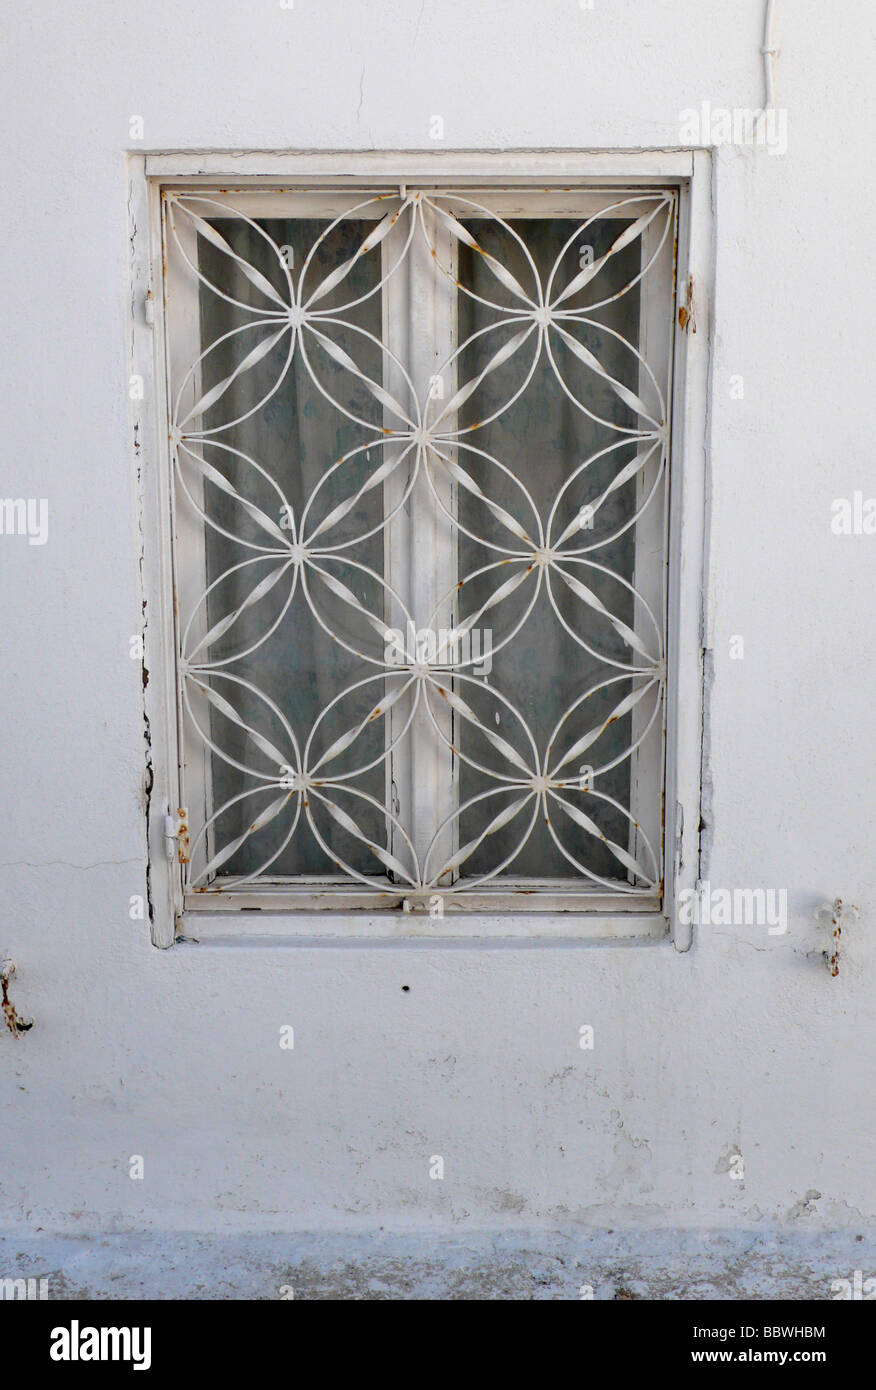 decorative window shutters free standing decorative window shutters greece stock photo 24534040 alamy